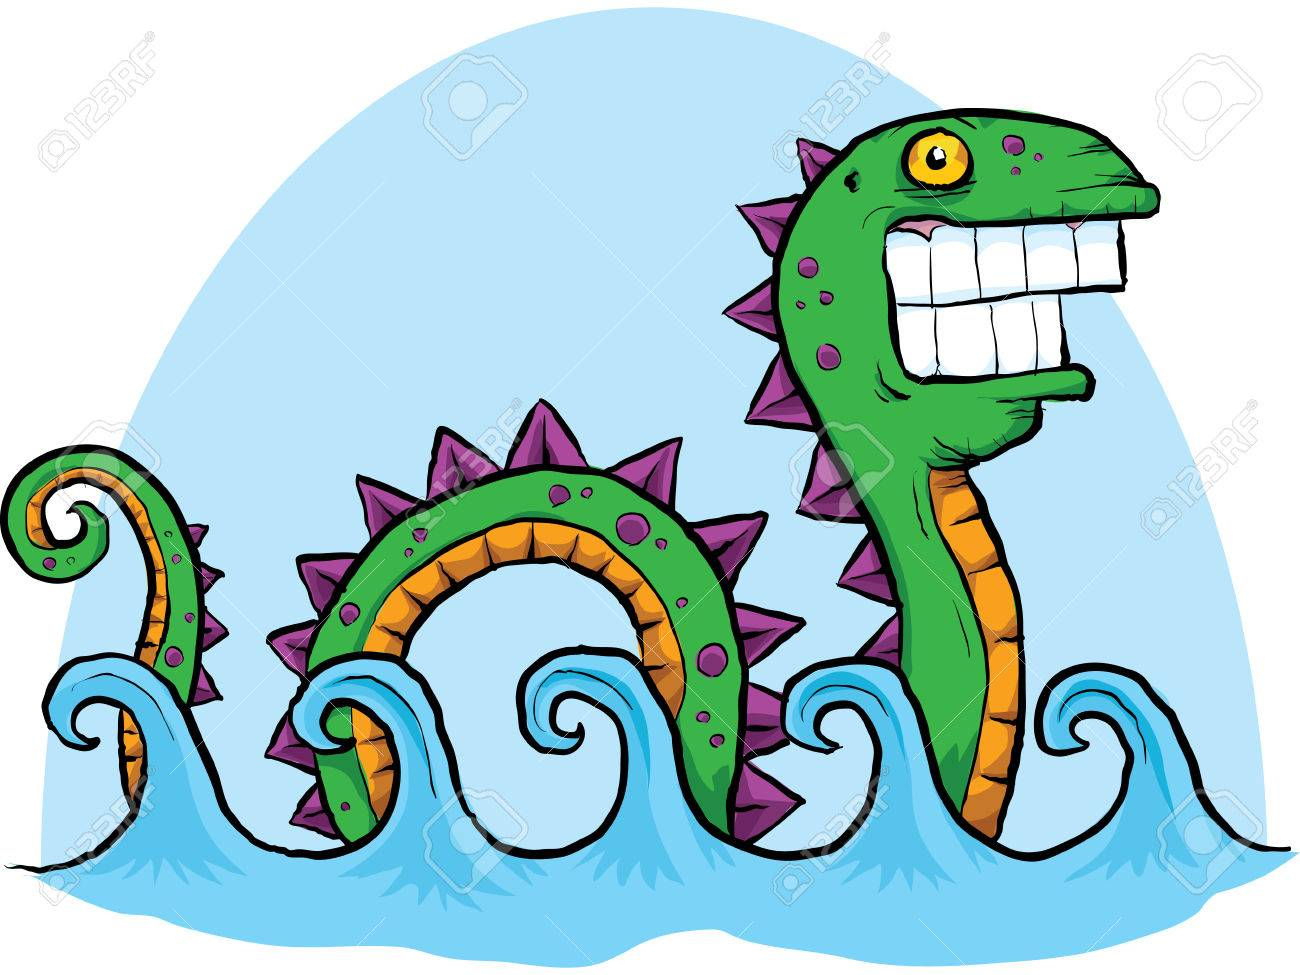 44 Tip Of The Day Cartoon Sea Monsters.